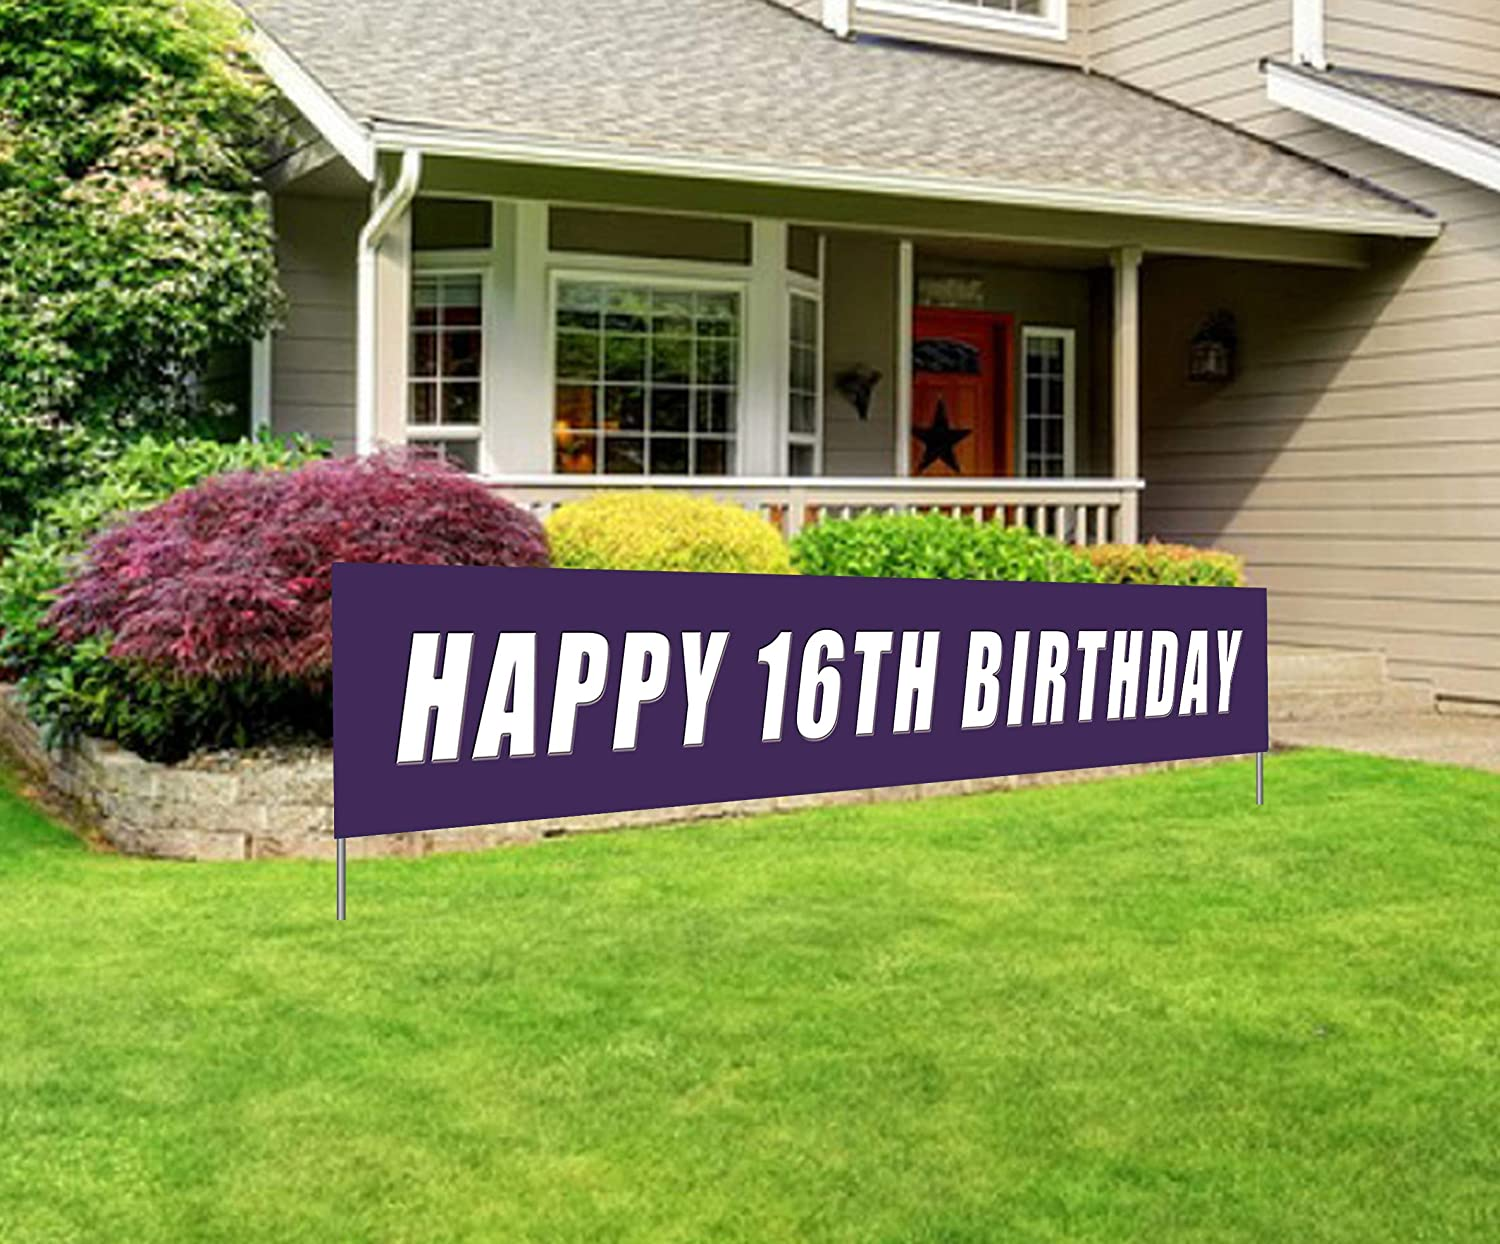 Happy Birthday Banner,16th Birthday Decorations for Boys,Sweet 16 Birthday Decorations,16th Birthday Gifts for Boys,Happy Sweet 16th Birthday Yard Signs Banner,16 Years Old Birthday Party Supplies